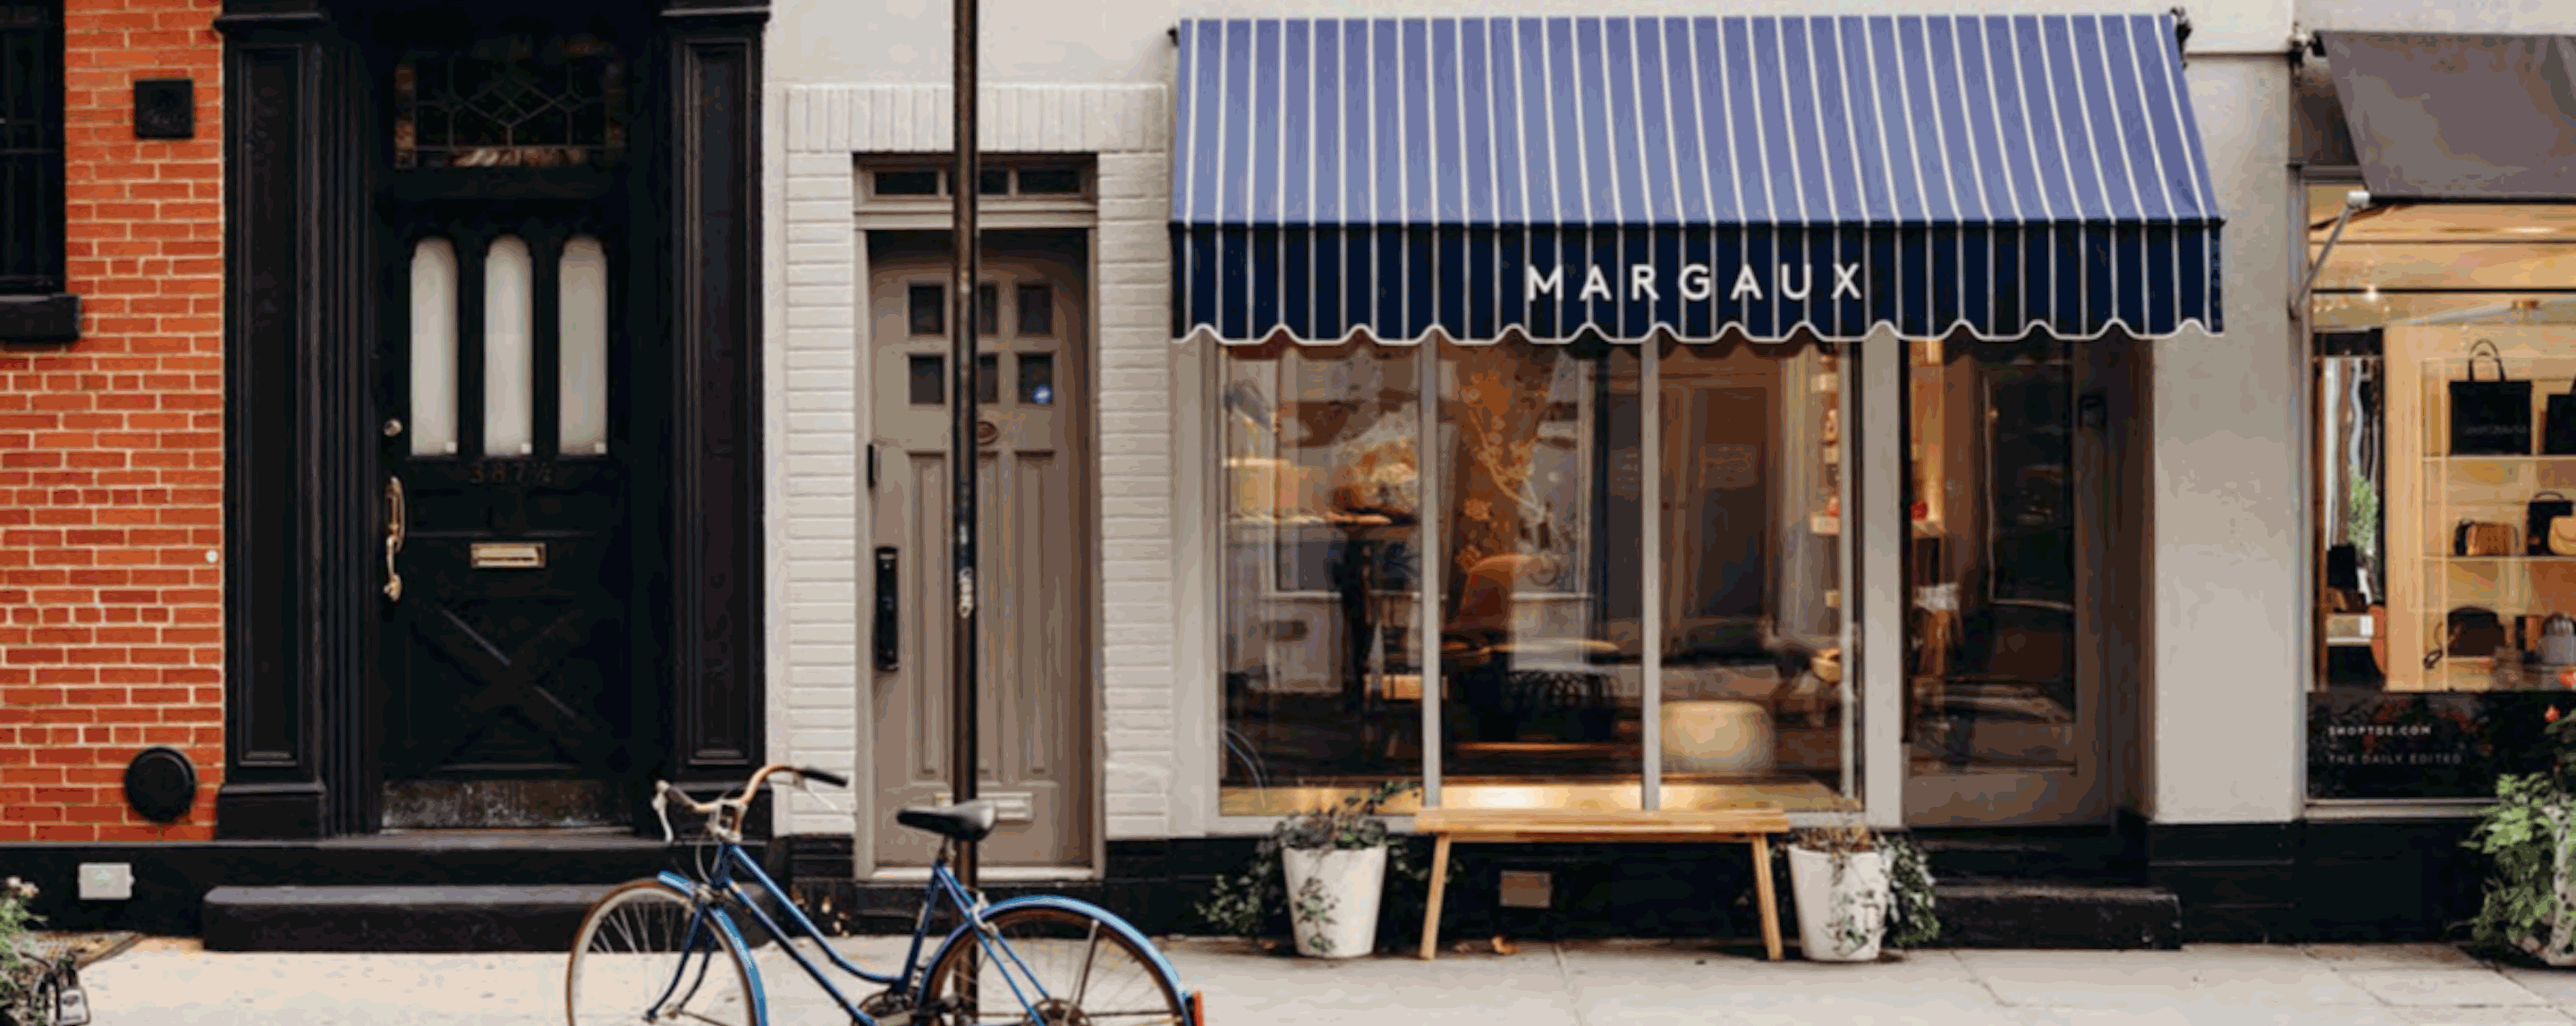 A storefront with a white and blue sign that says Margaux. A blue bicycle sits in the foreground.